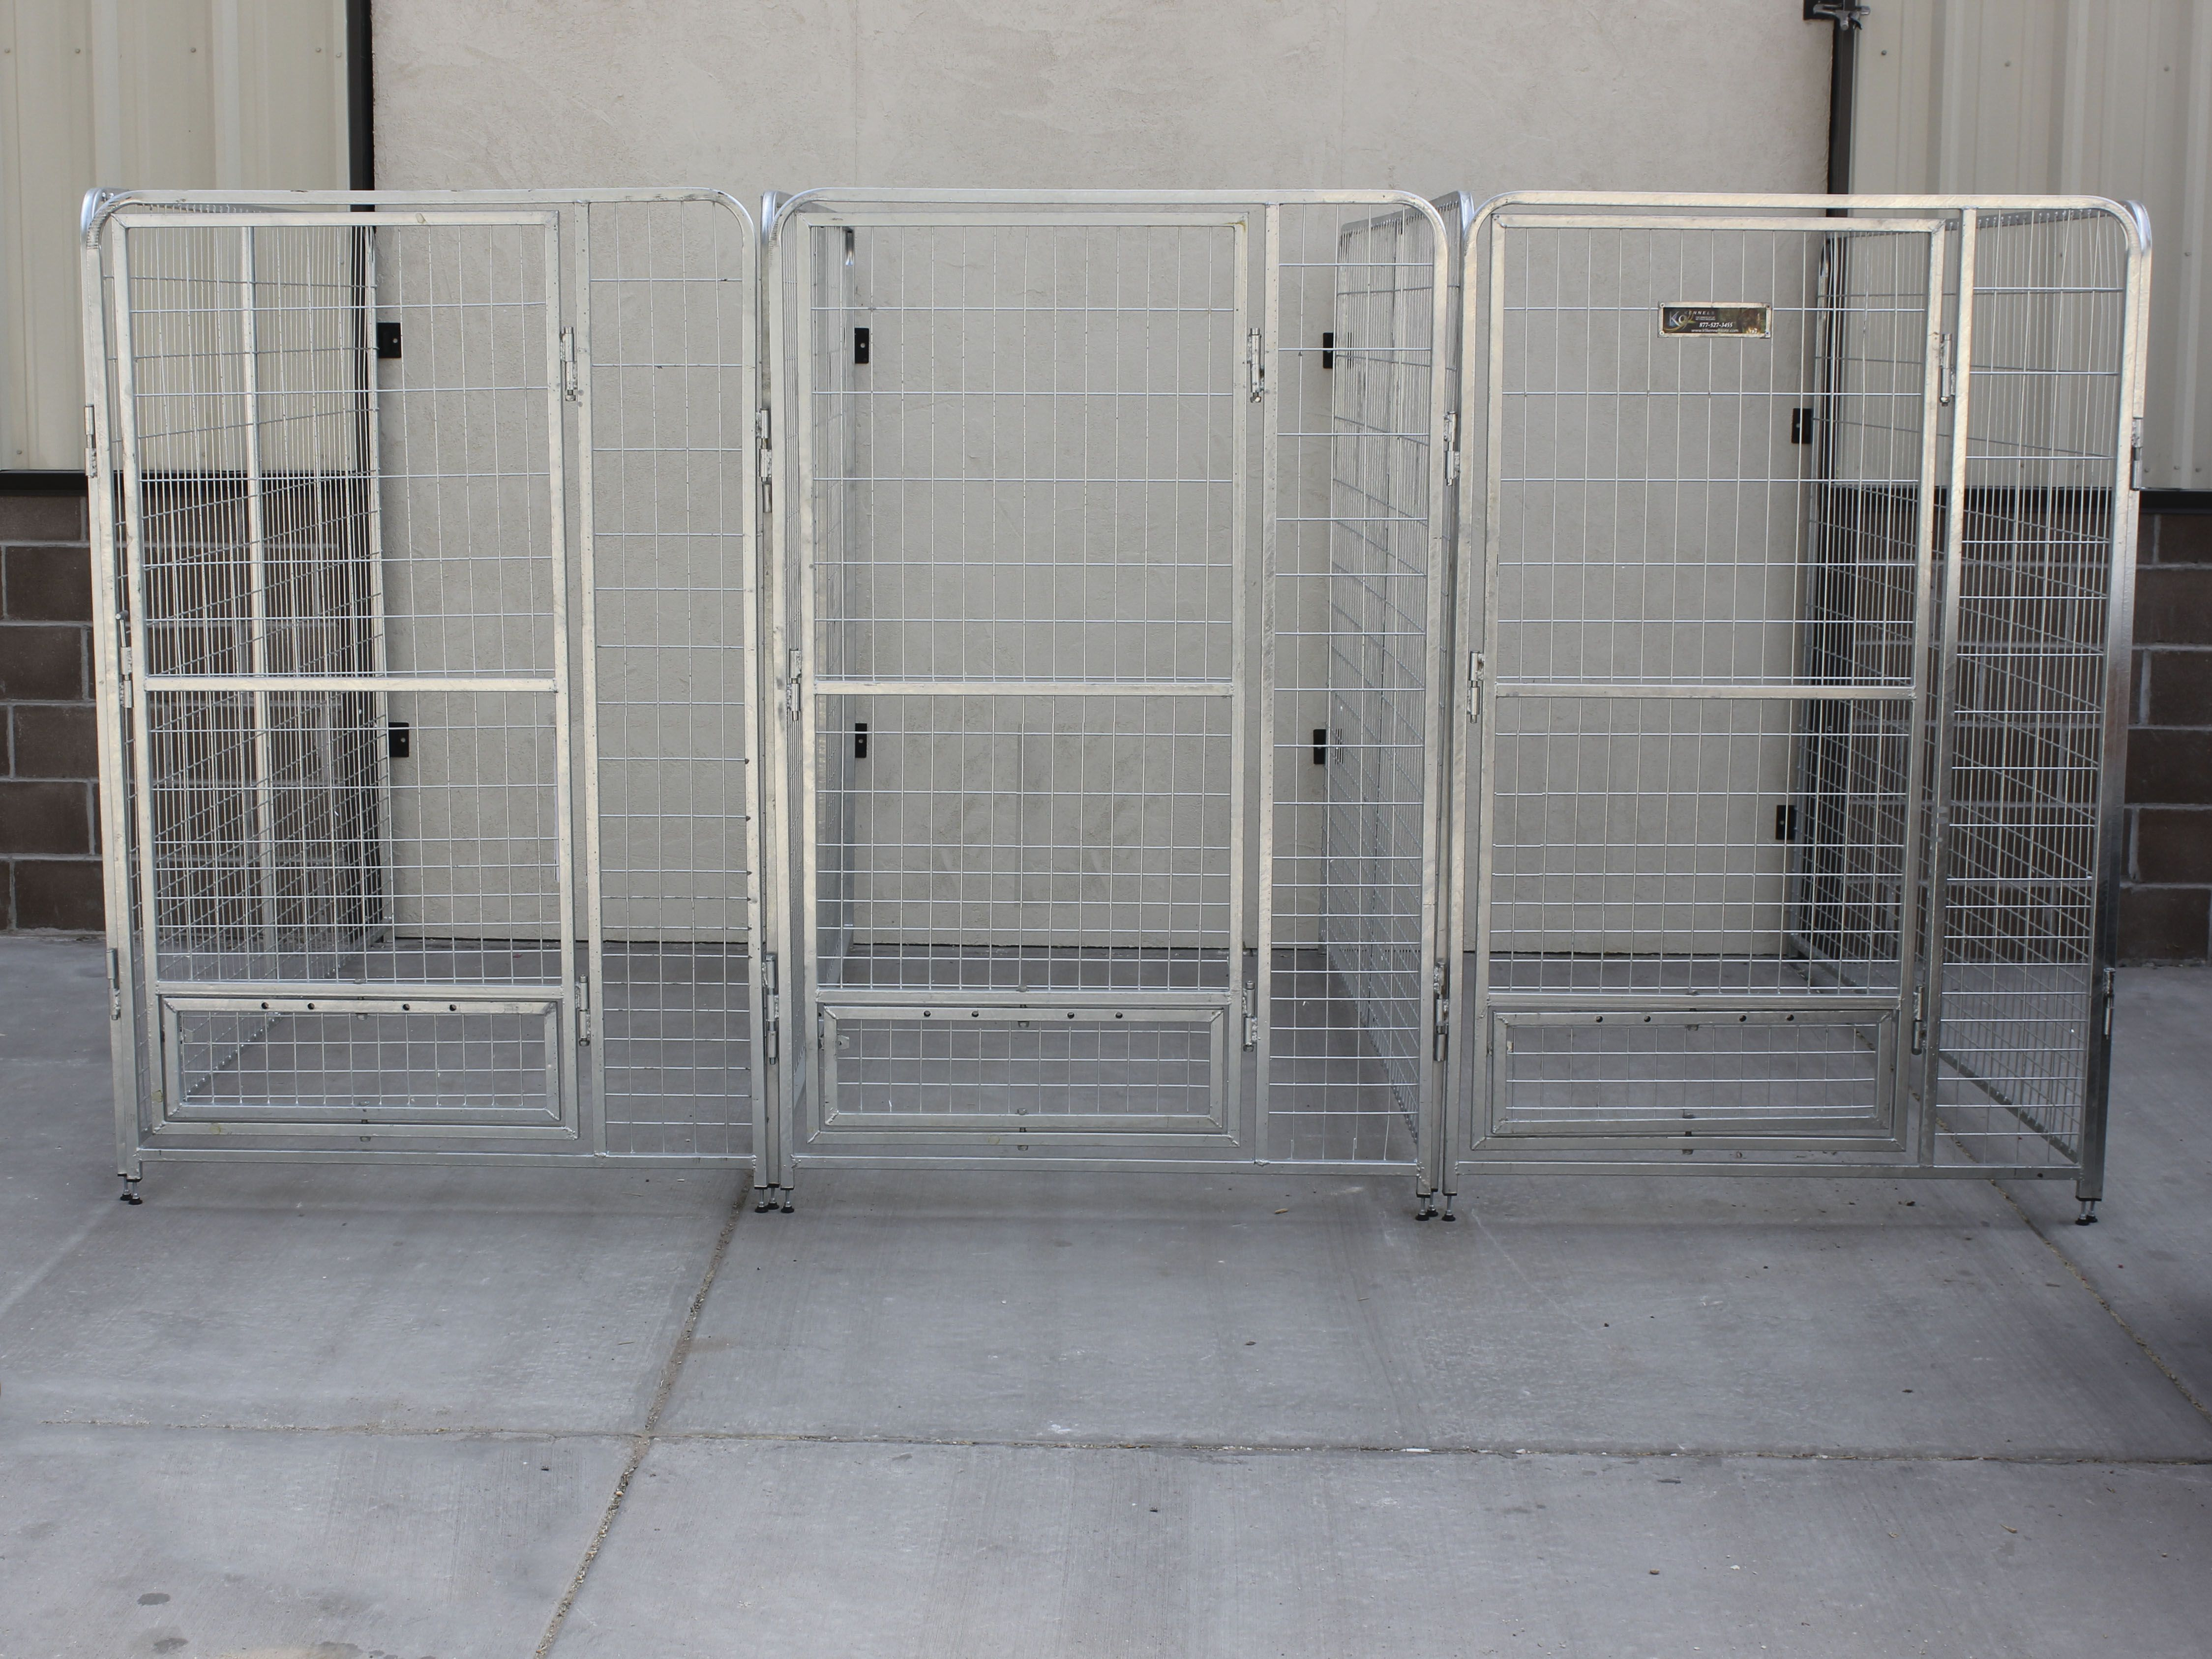 K9 Kennel Inline Dog Kennel System With No Backs Using Wall Mount